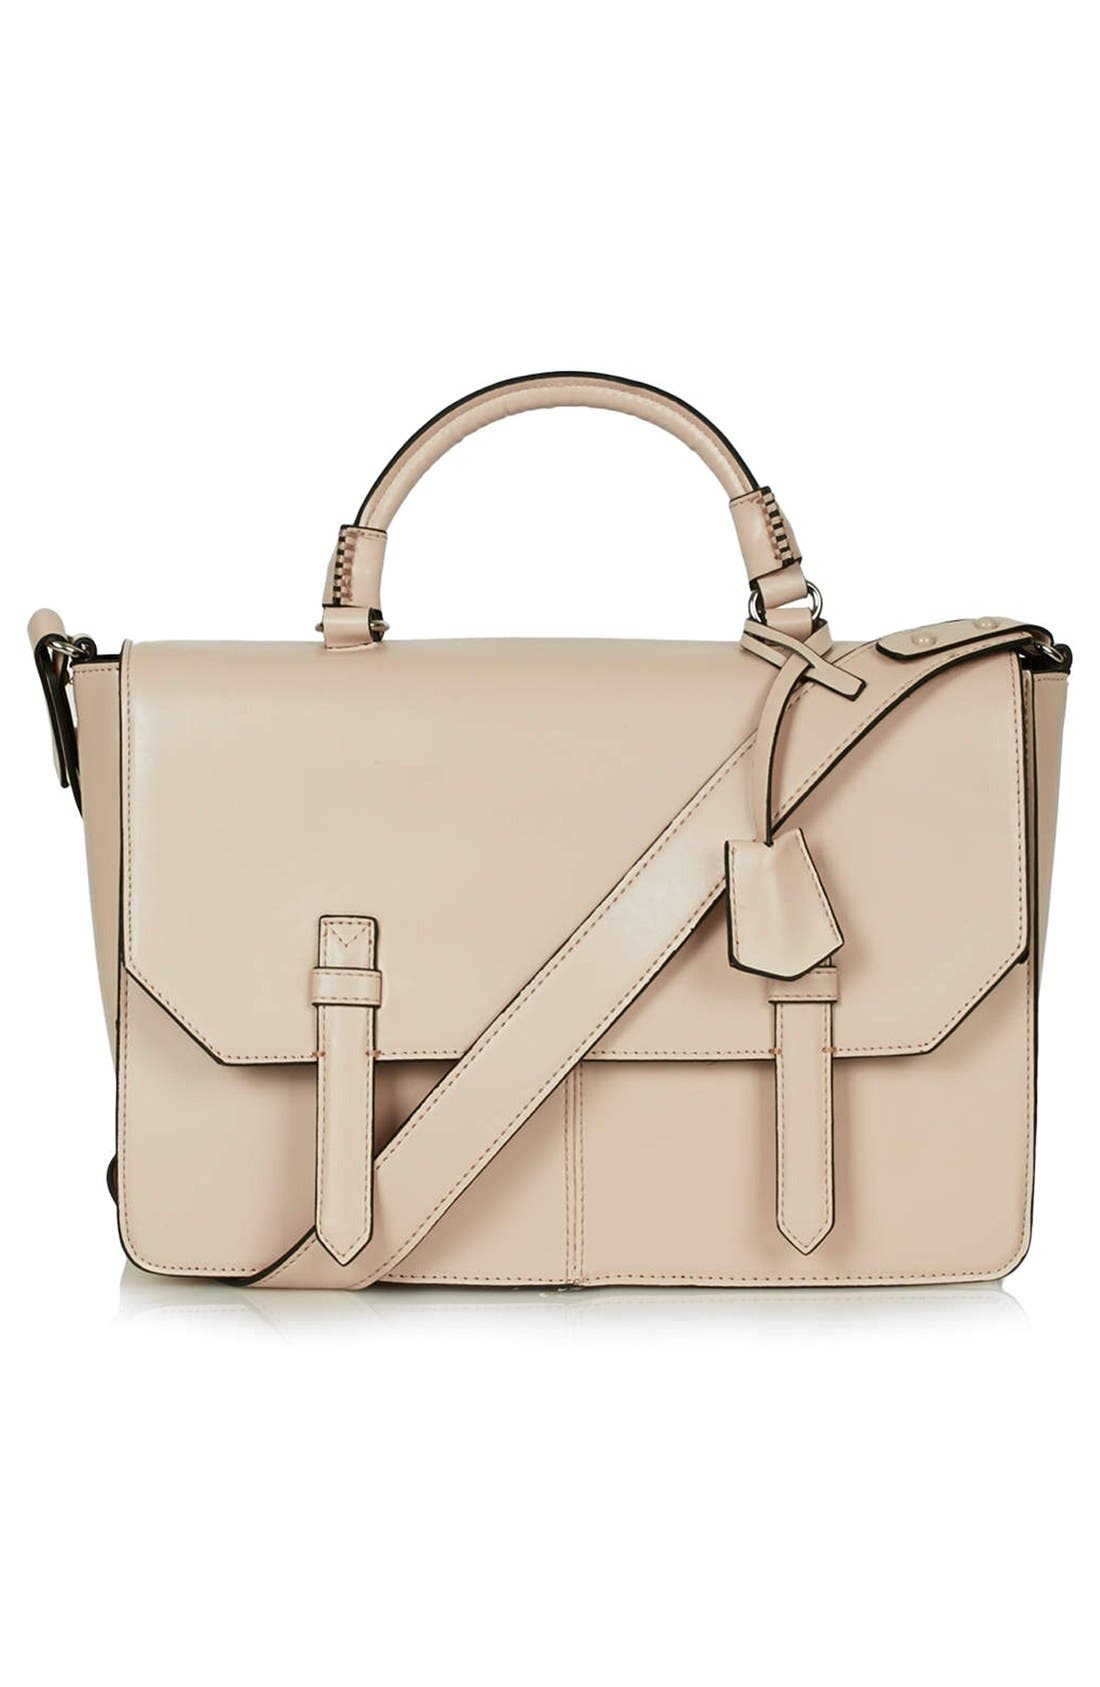 Alternate Image 1 Selected - Topshop 'Clean' Faux Leather Satchel